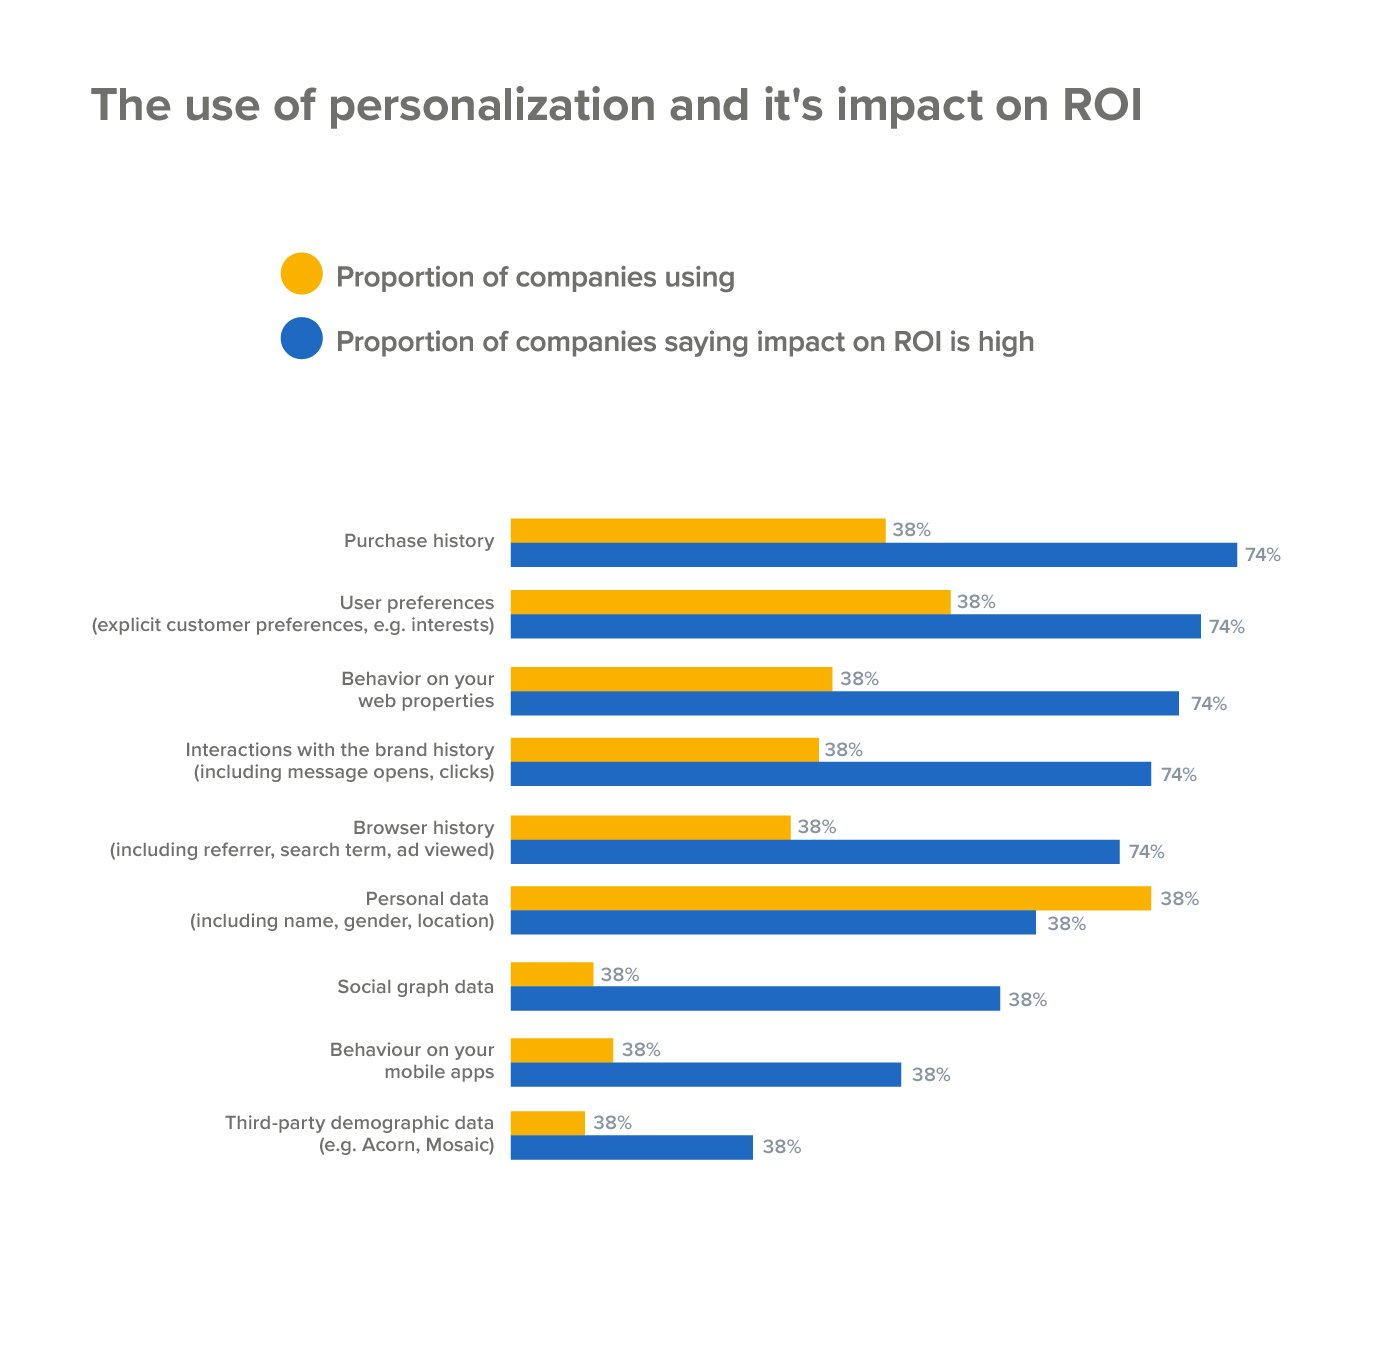 Personalization and high impact ROI